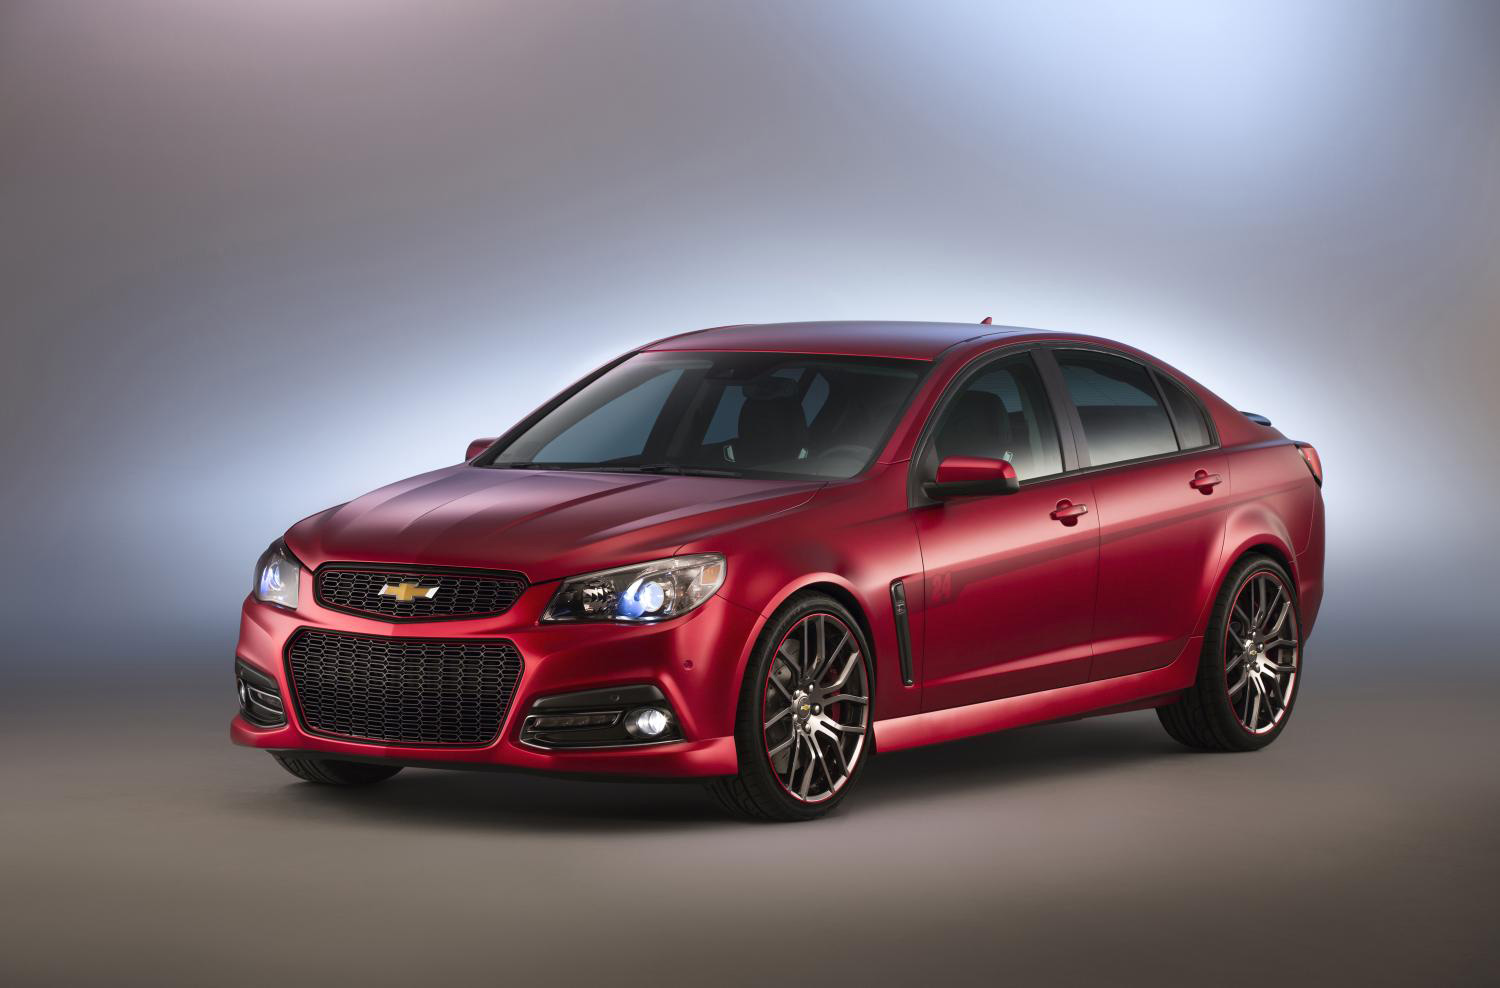 The Chevy Ss Now With A Manual Transmission That Got Me Thinking Infinite Garage